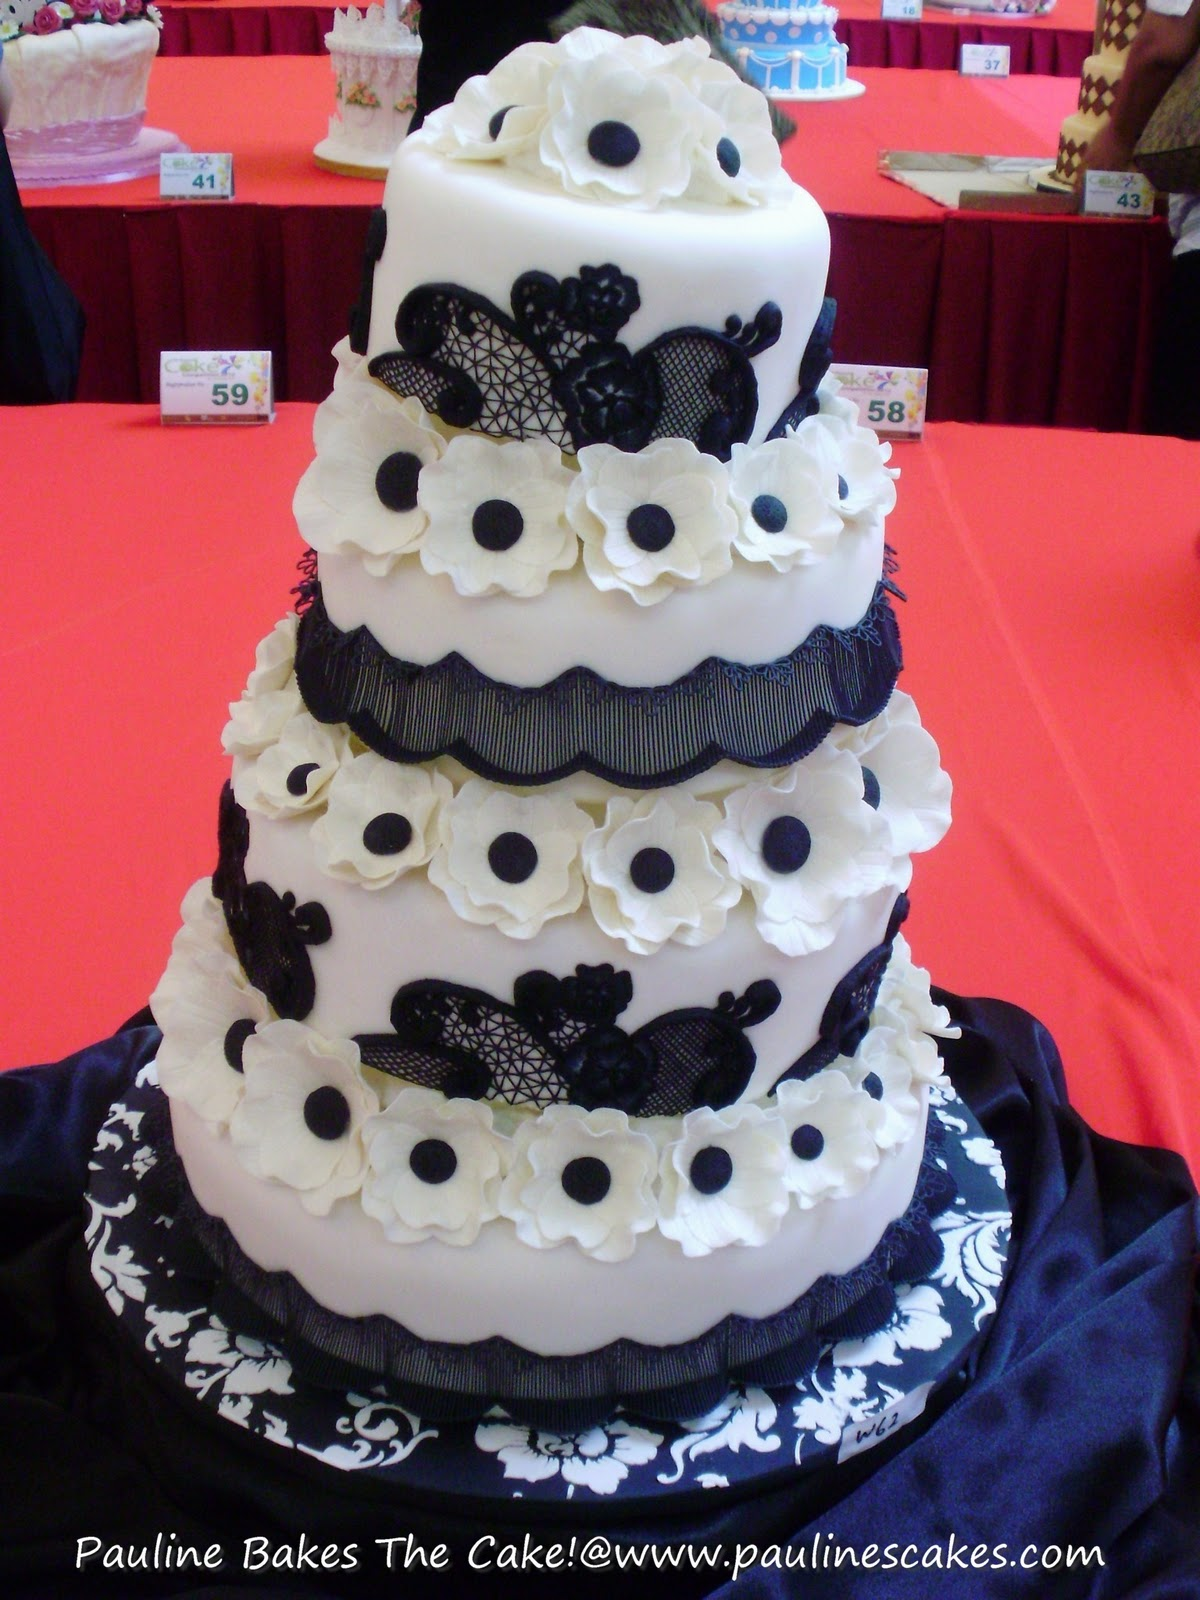 Pauline Bakes The Cake Black Lace Wedding Cake Entry In The